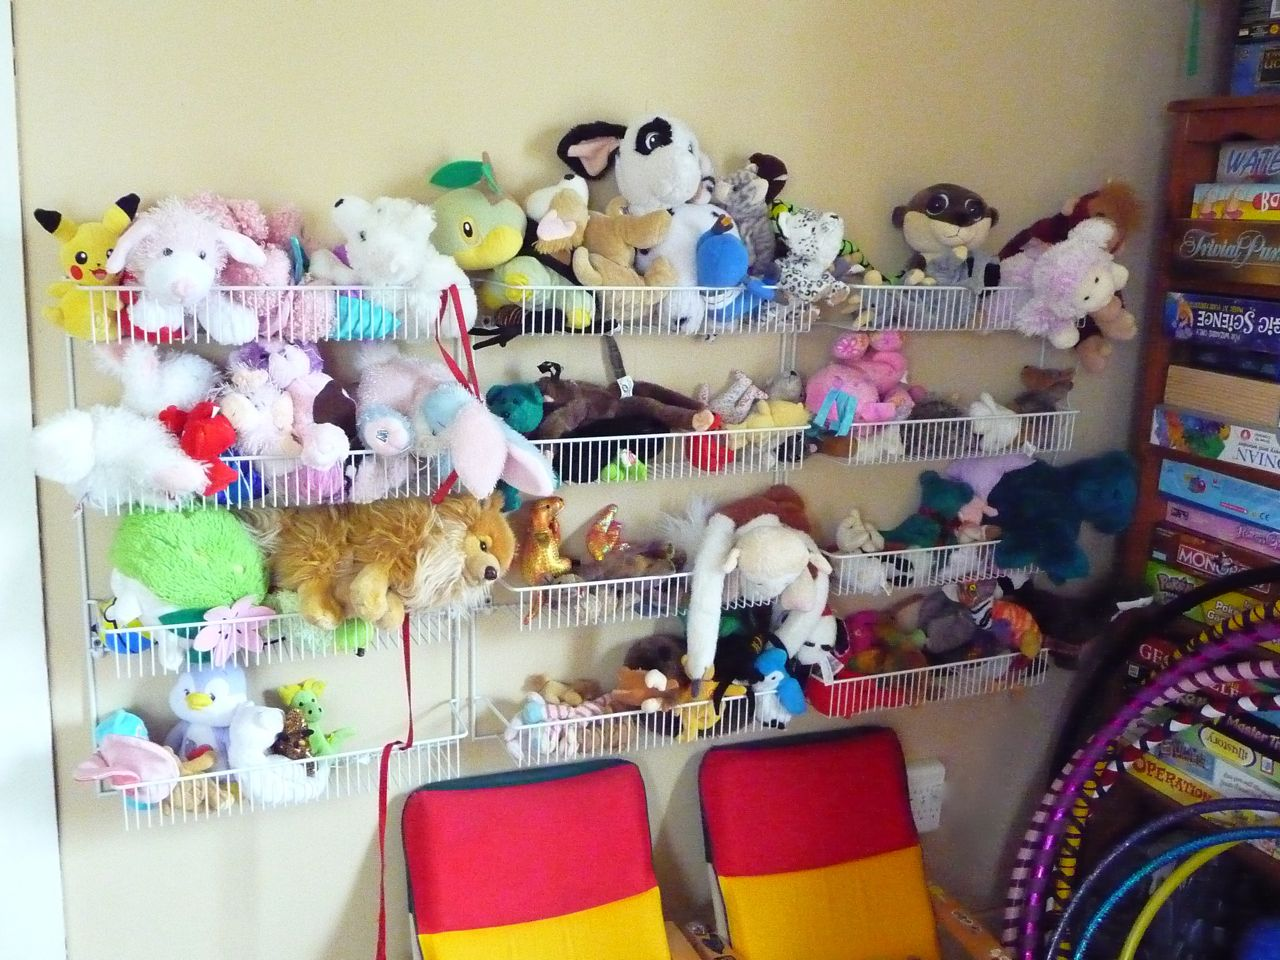 Here's quite a few ideas for storage for stuffed animals that have been shared by readers to give you inspiration. These ideas range from store bought items to do it yourself creations. The solution that will work for you and your kids will be the one that fits the size of the collection you have.